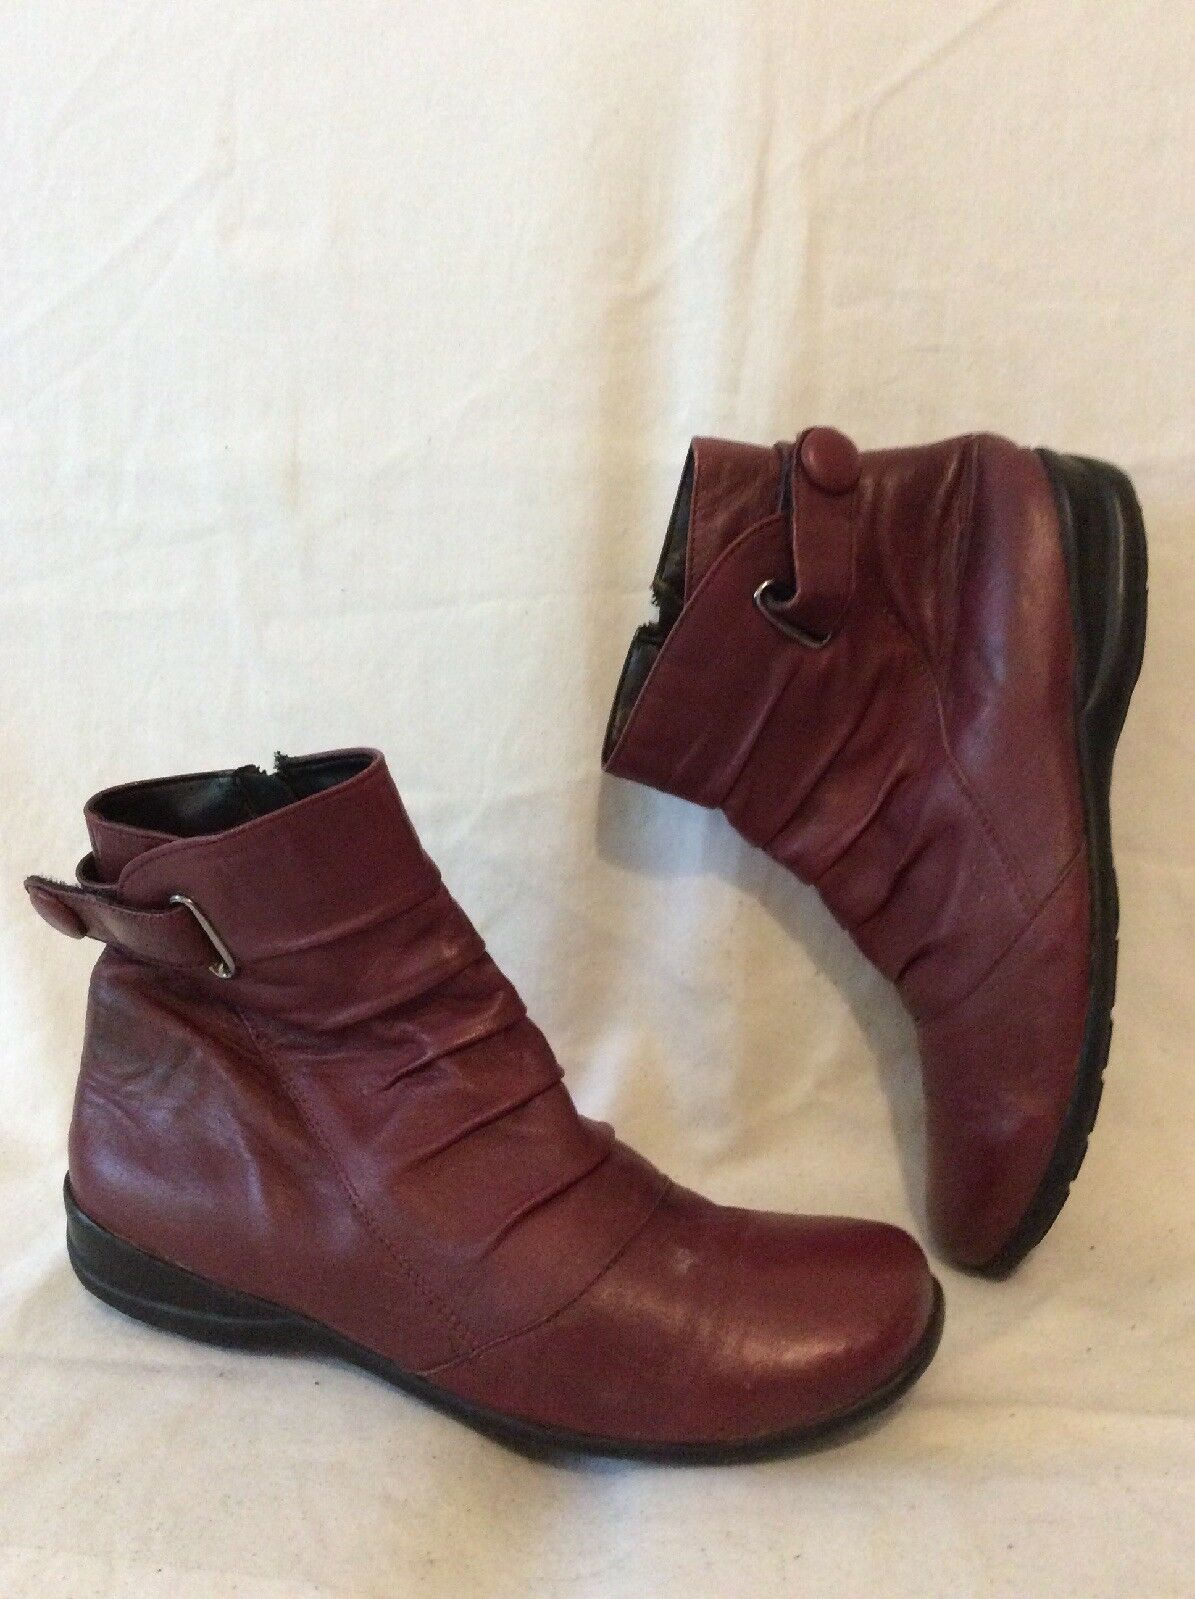 Lotus Maroon Ankle Leather Boots Size 6